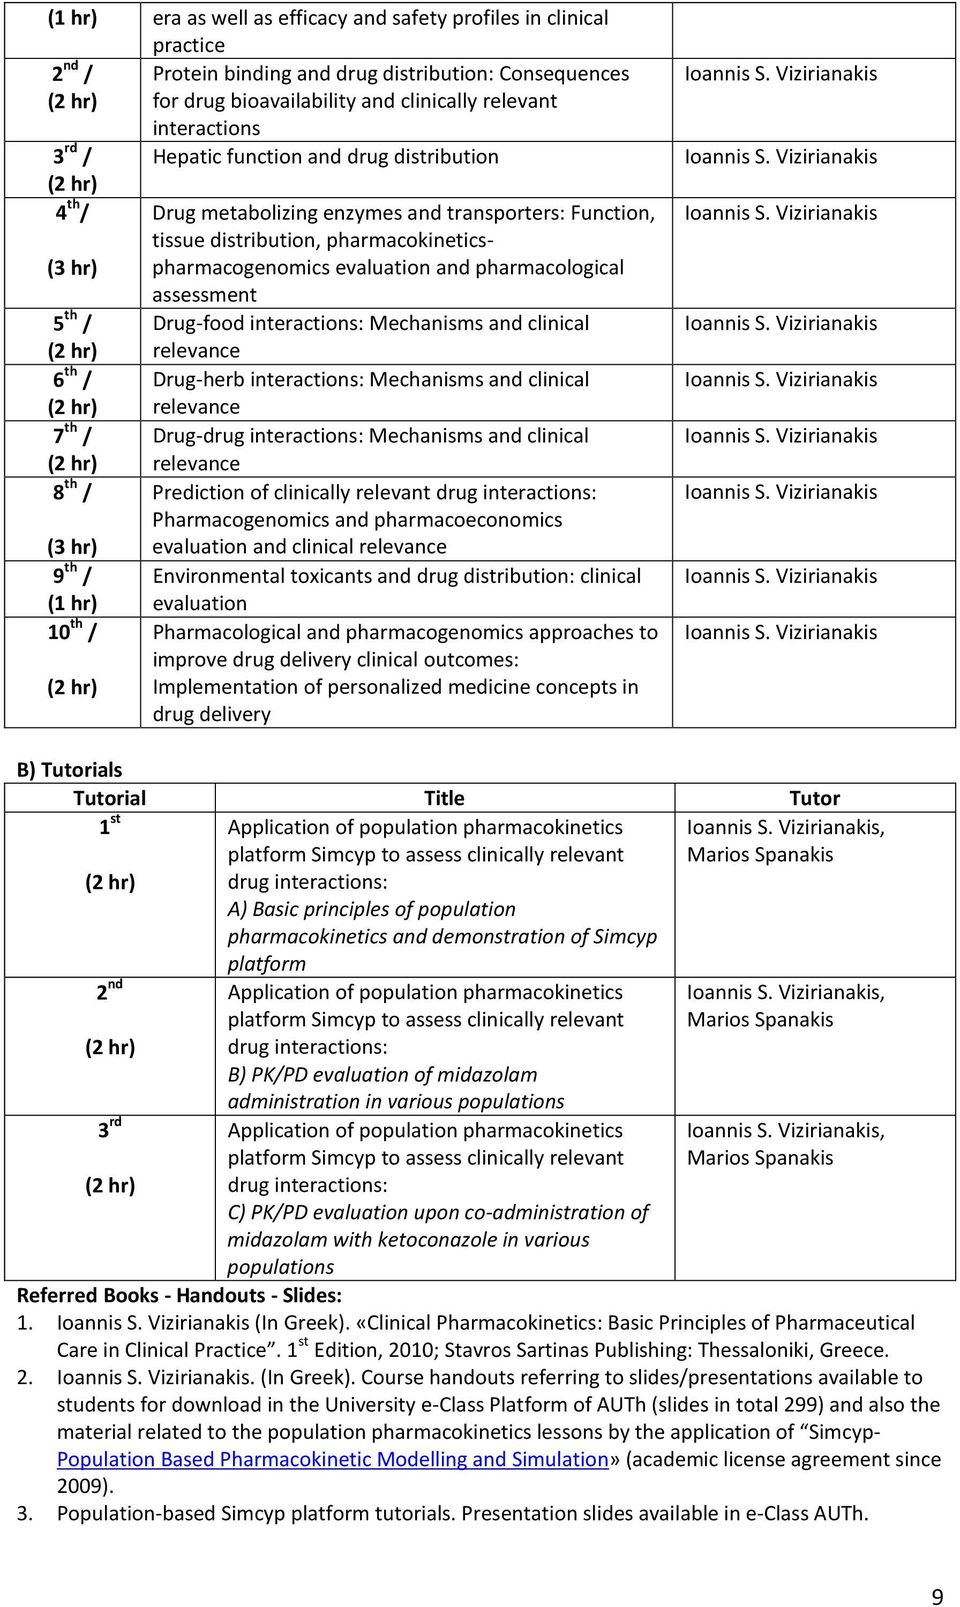 pharmacological assessment 5 th / Drug-food interactions: Mechanisms and clinical (2 hr) relevance 6 th / Drug-herb interactions: Mechanisms and clinical (2 hr) relevance 7 th / Drug-drug